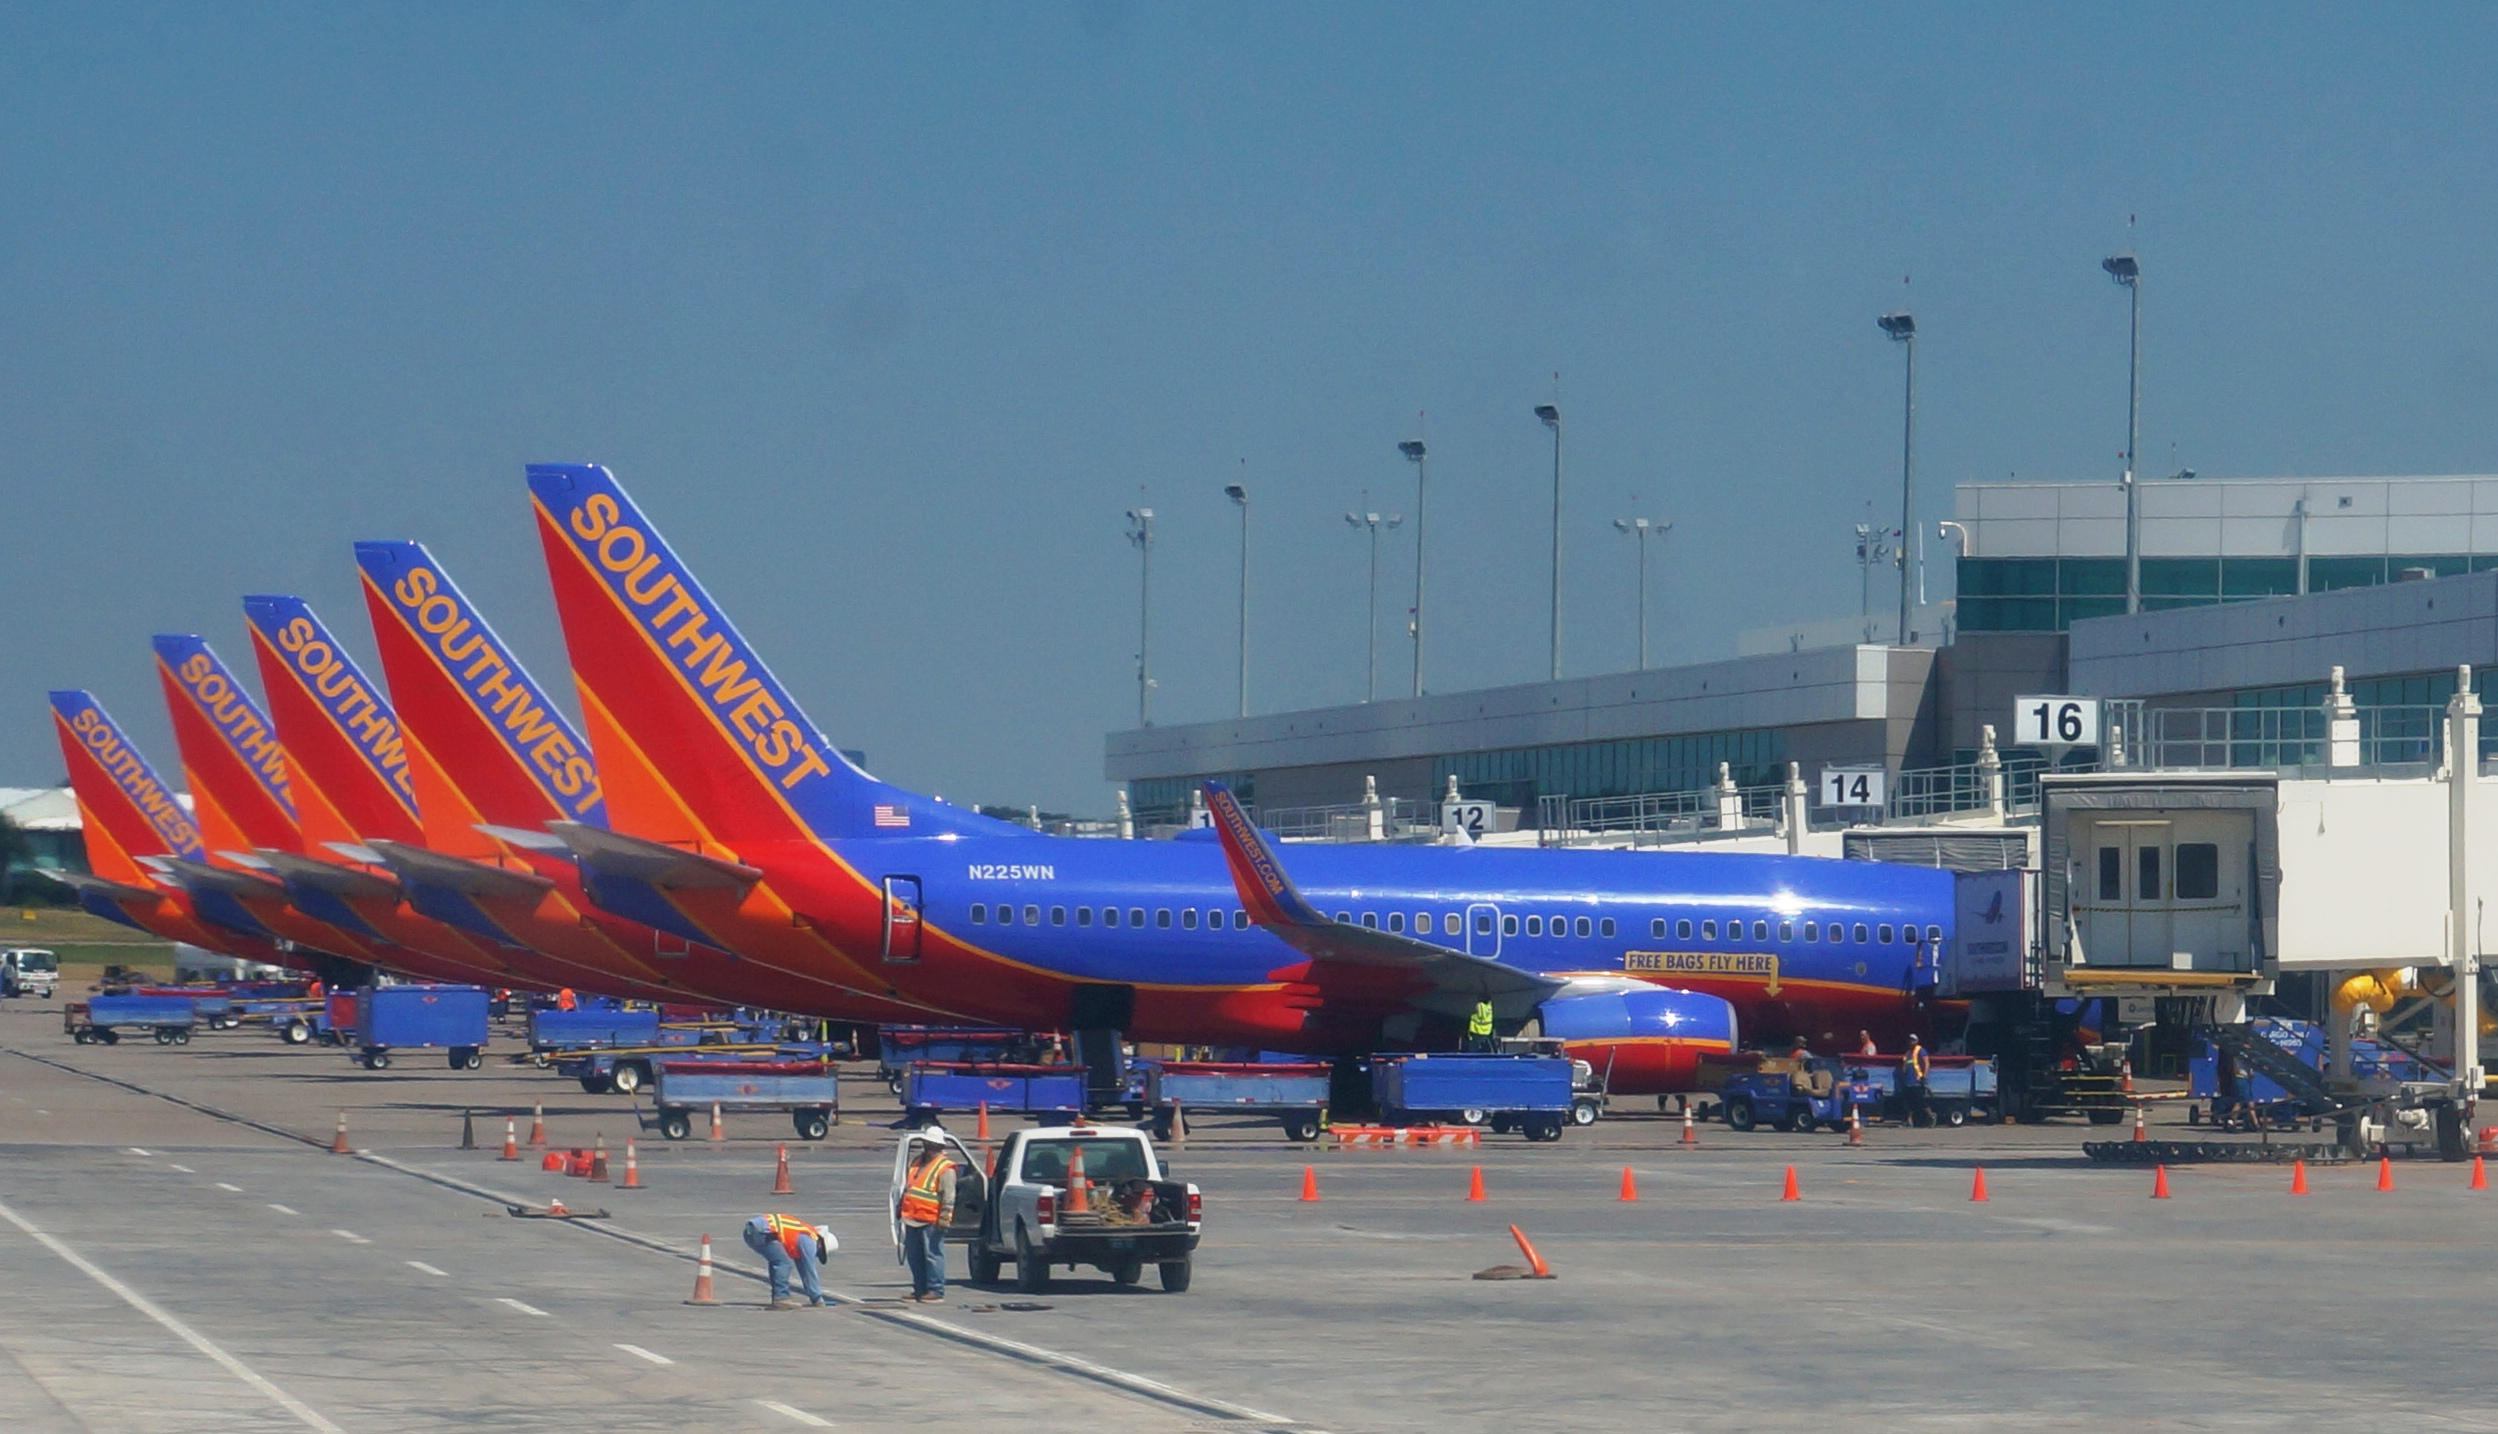 southwest airlines grounds 128 boeing 737 airplanes for missed